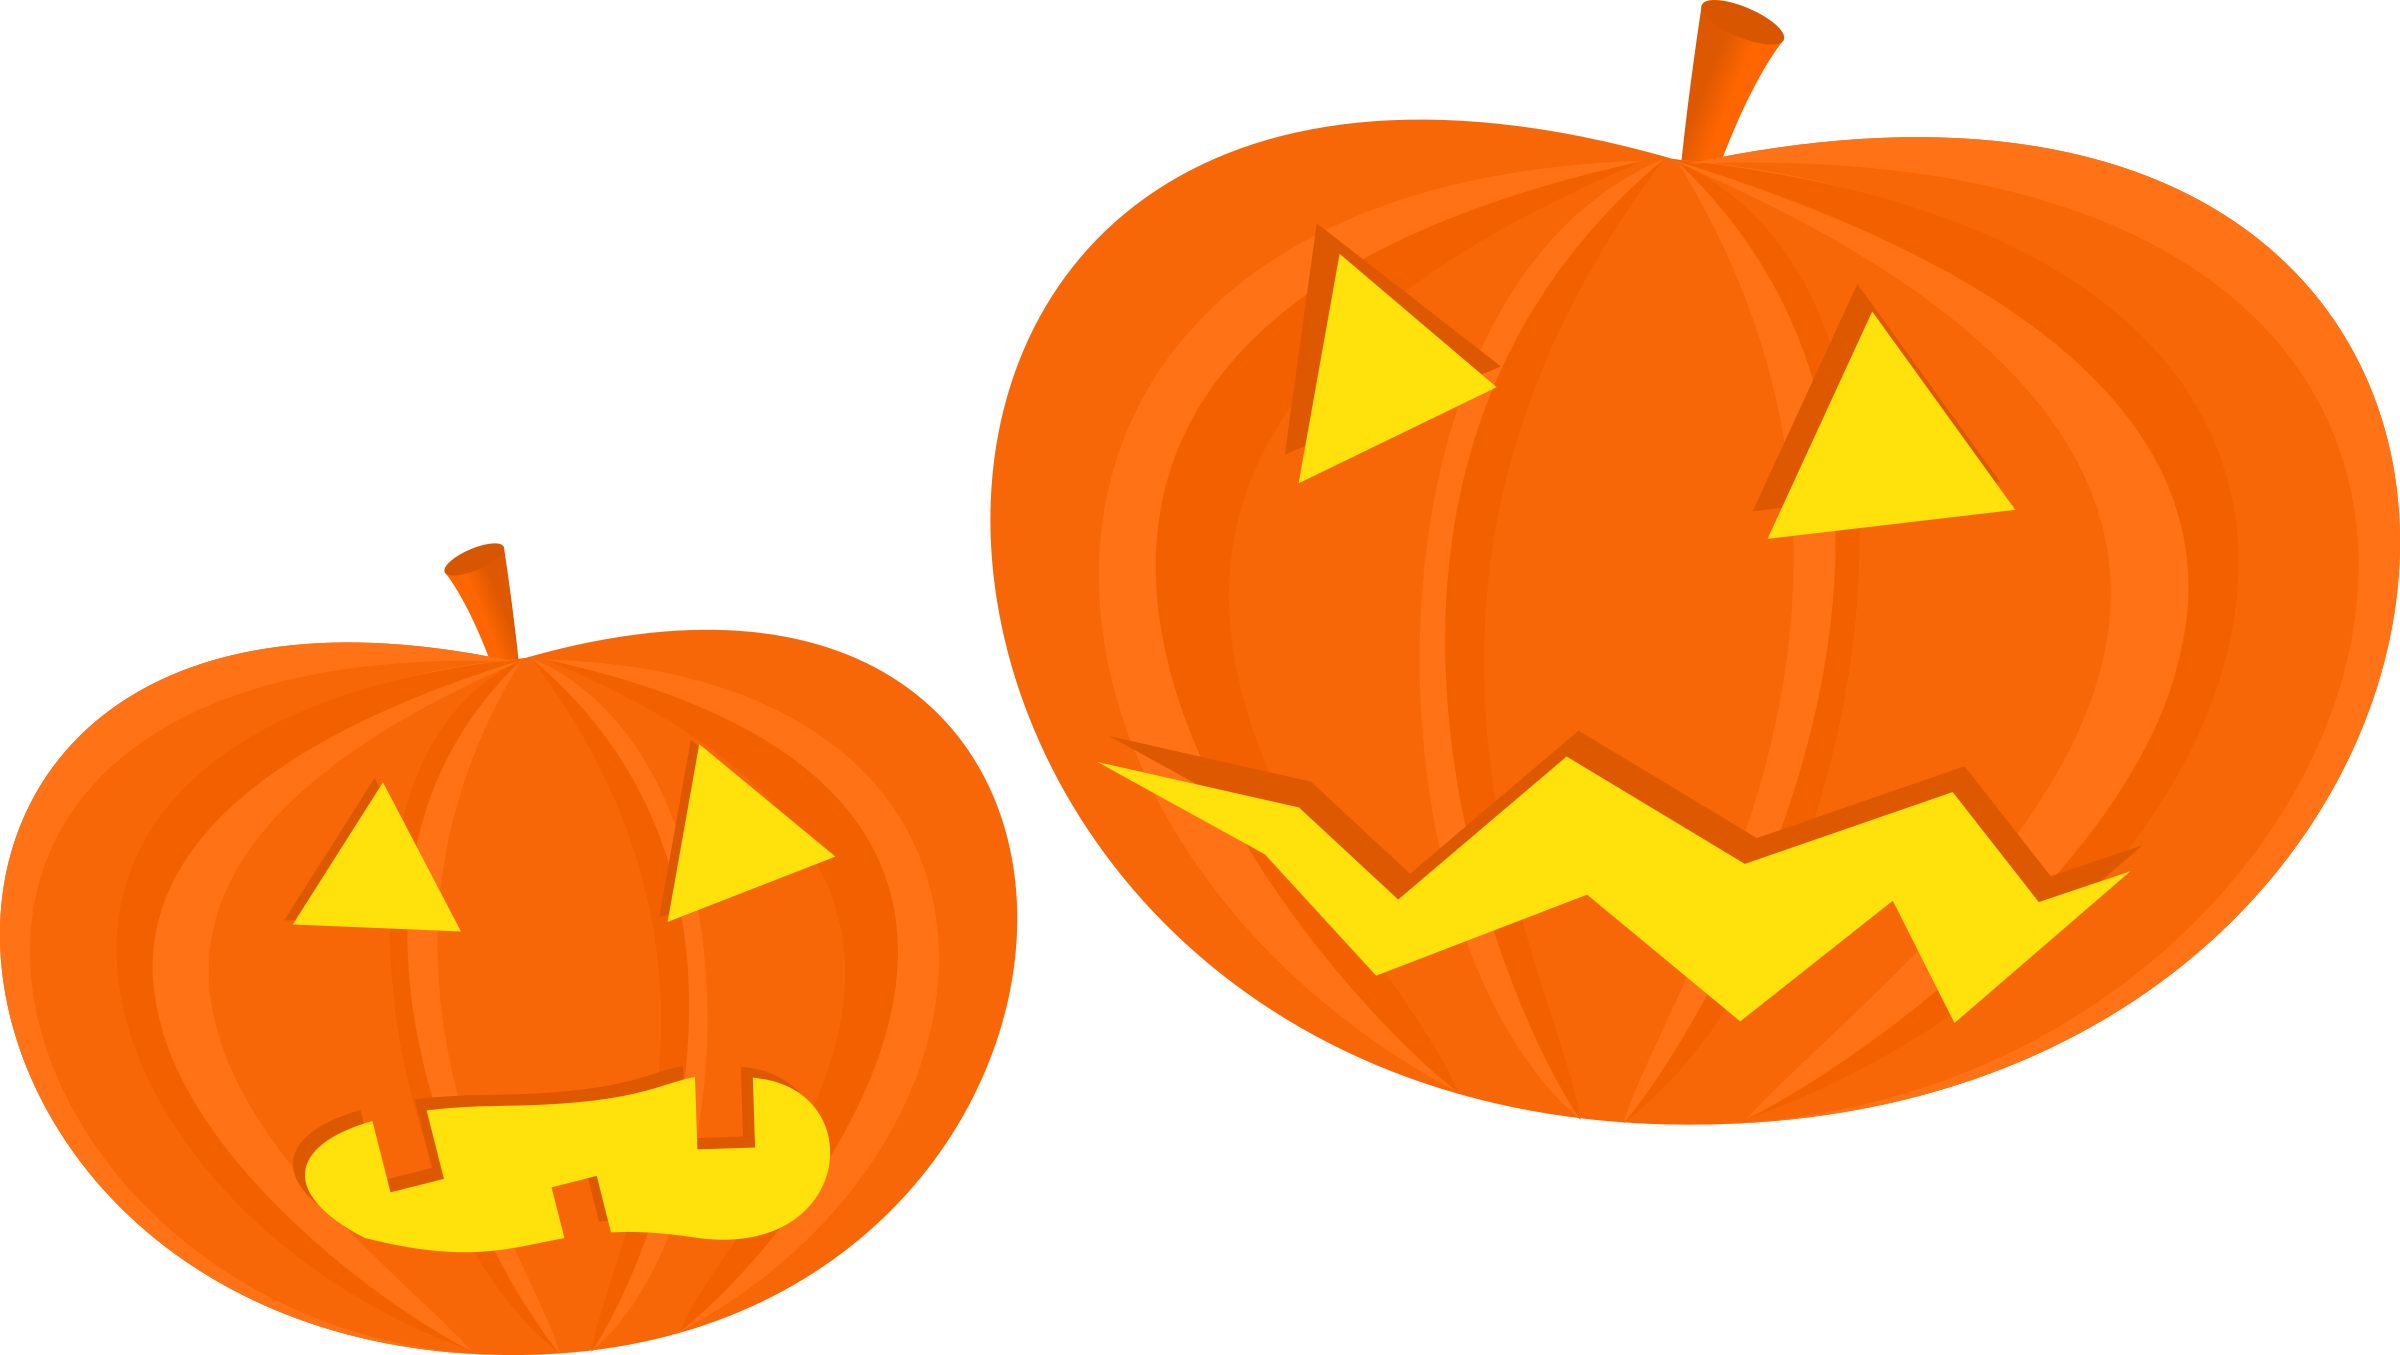 Clipart unhappy pumpkin protesting clipart transparent Halloween Party at Giggles Private Day Nursery in Lytham clipart transparent